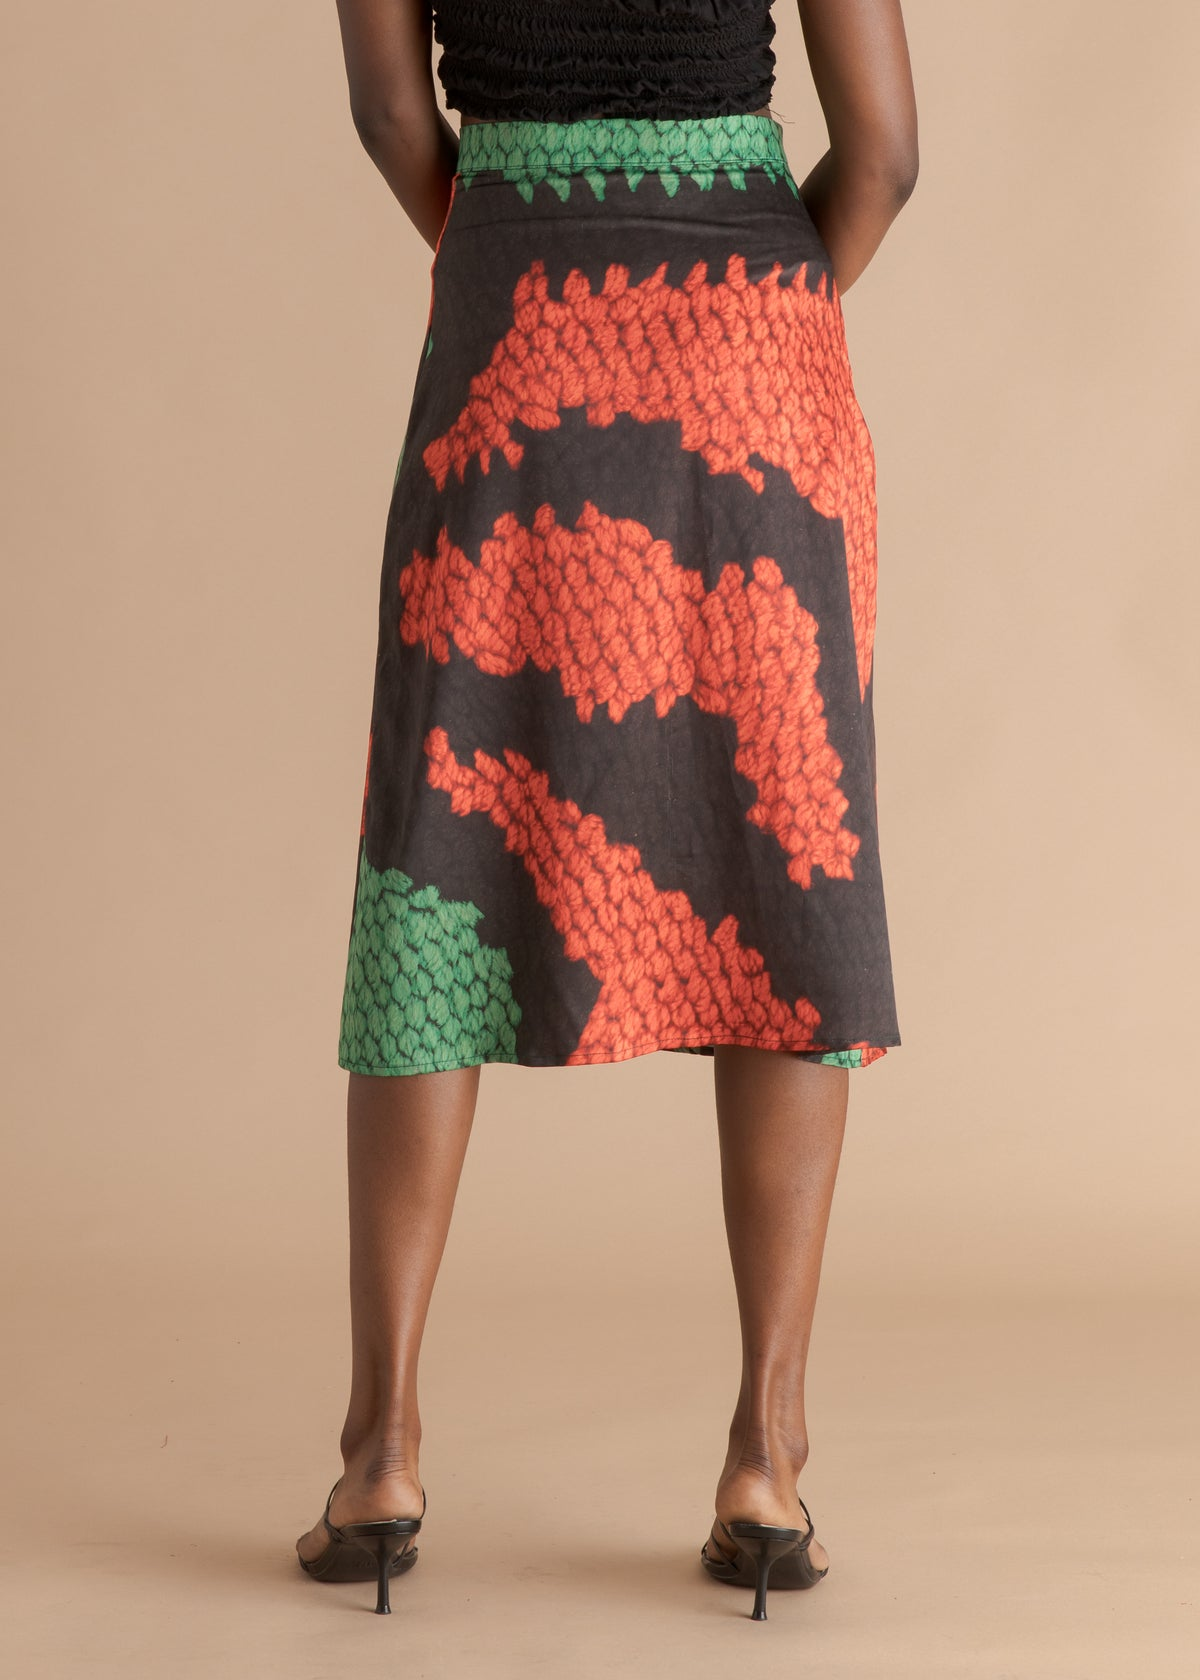 Nicholas Coutts green and orange skirt